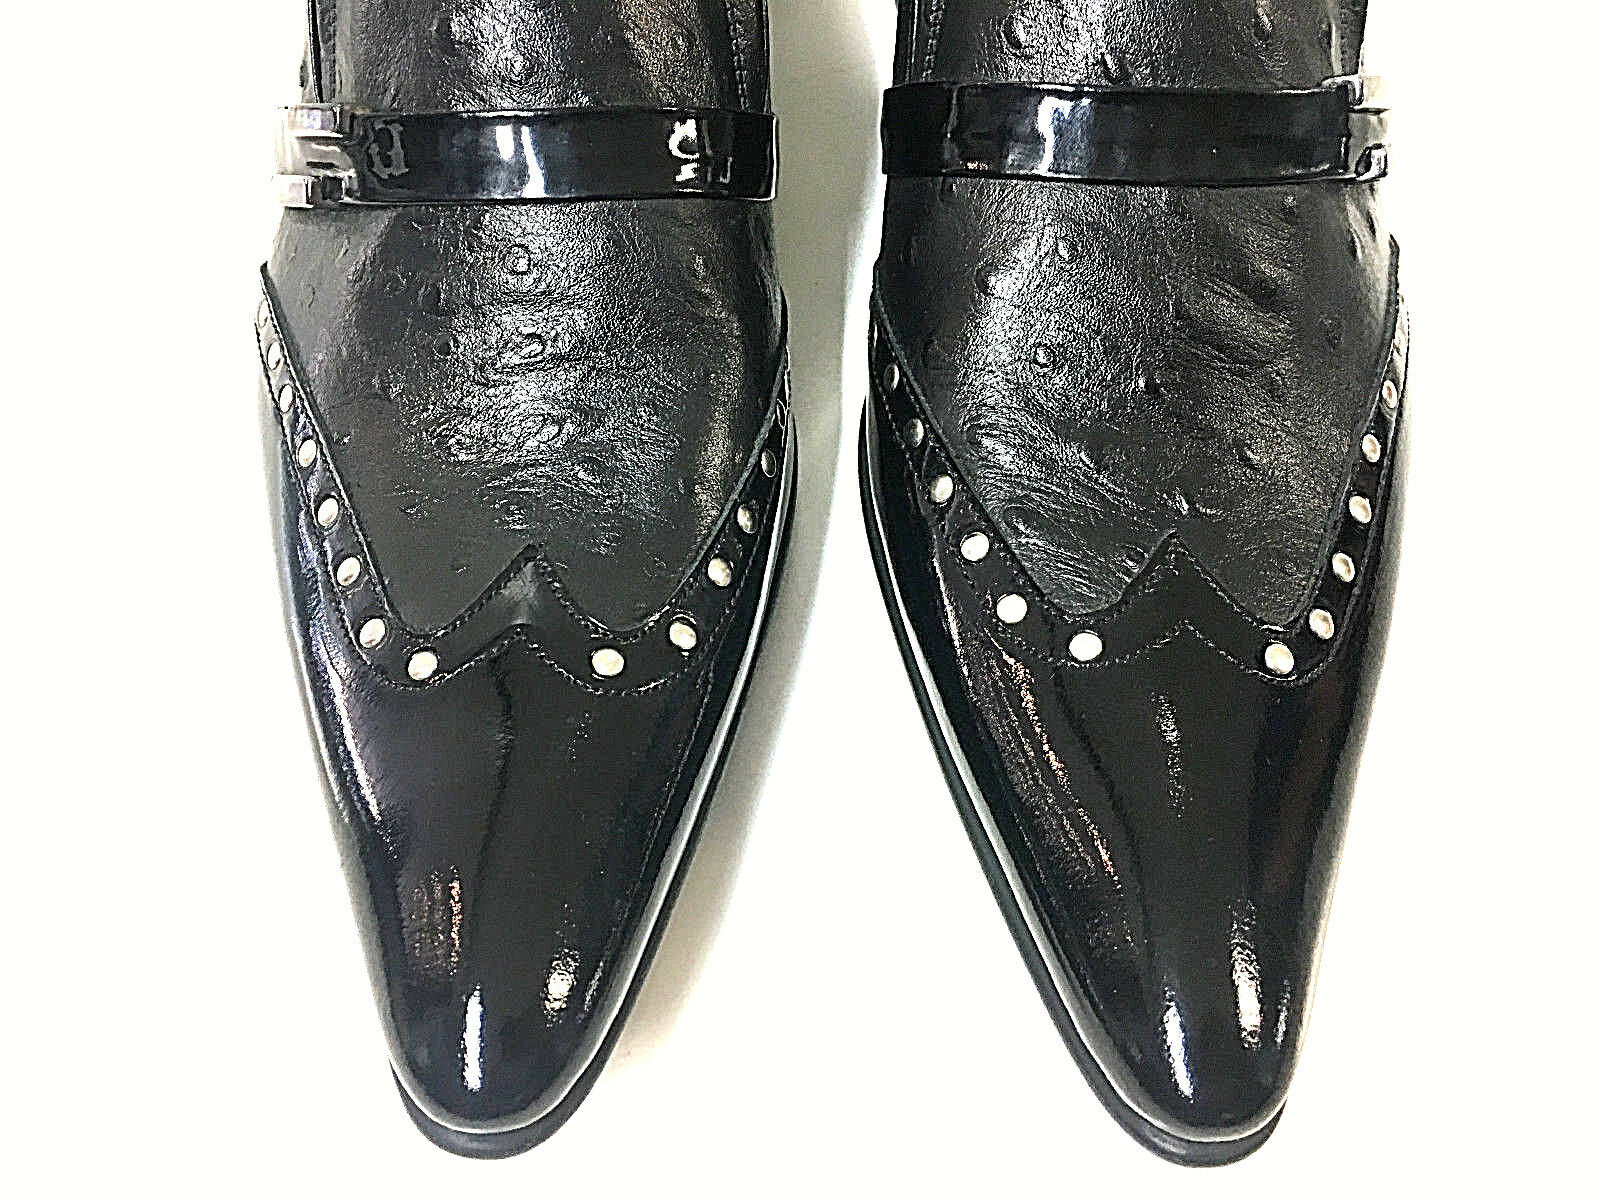 Chelsy cuirs STRAUSS hommes cuir cuir hommes STRAUSS CREATEUR chaussures rivets boutons Pantoufles 44 62f6f6